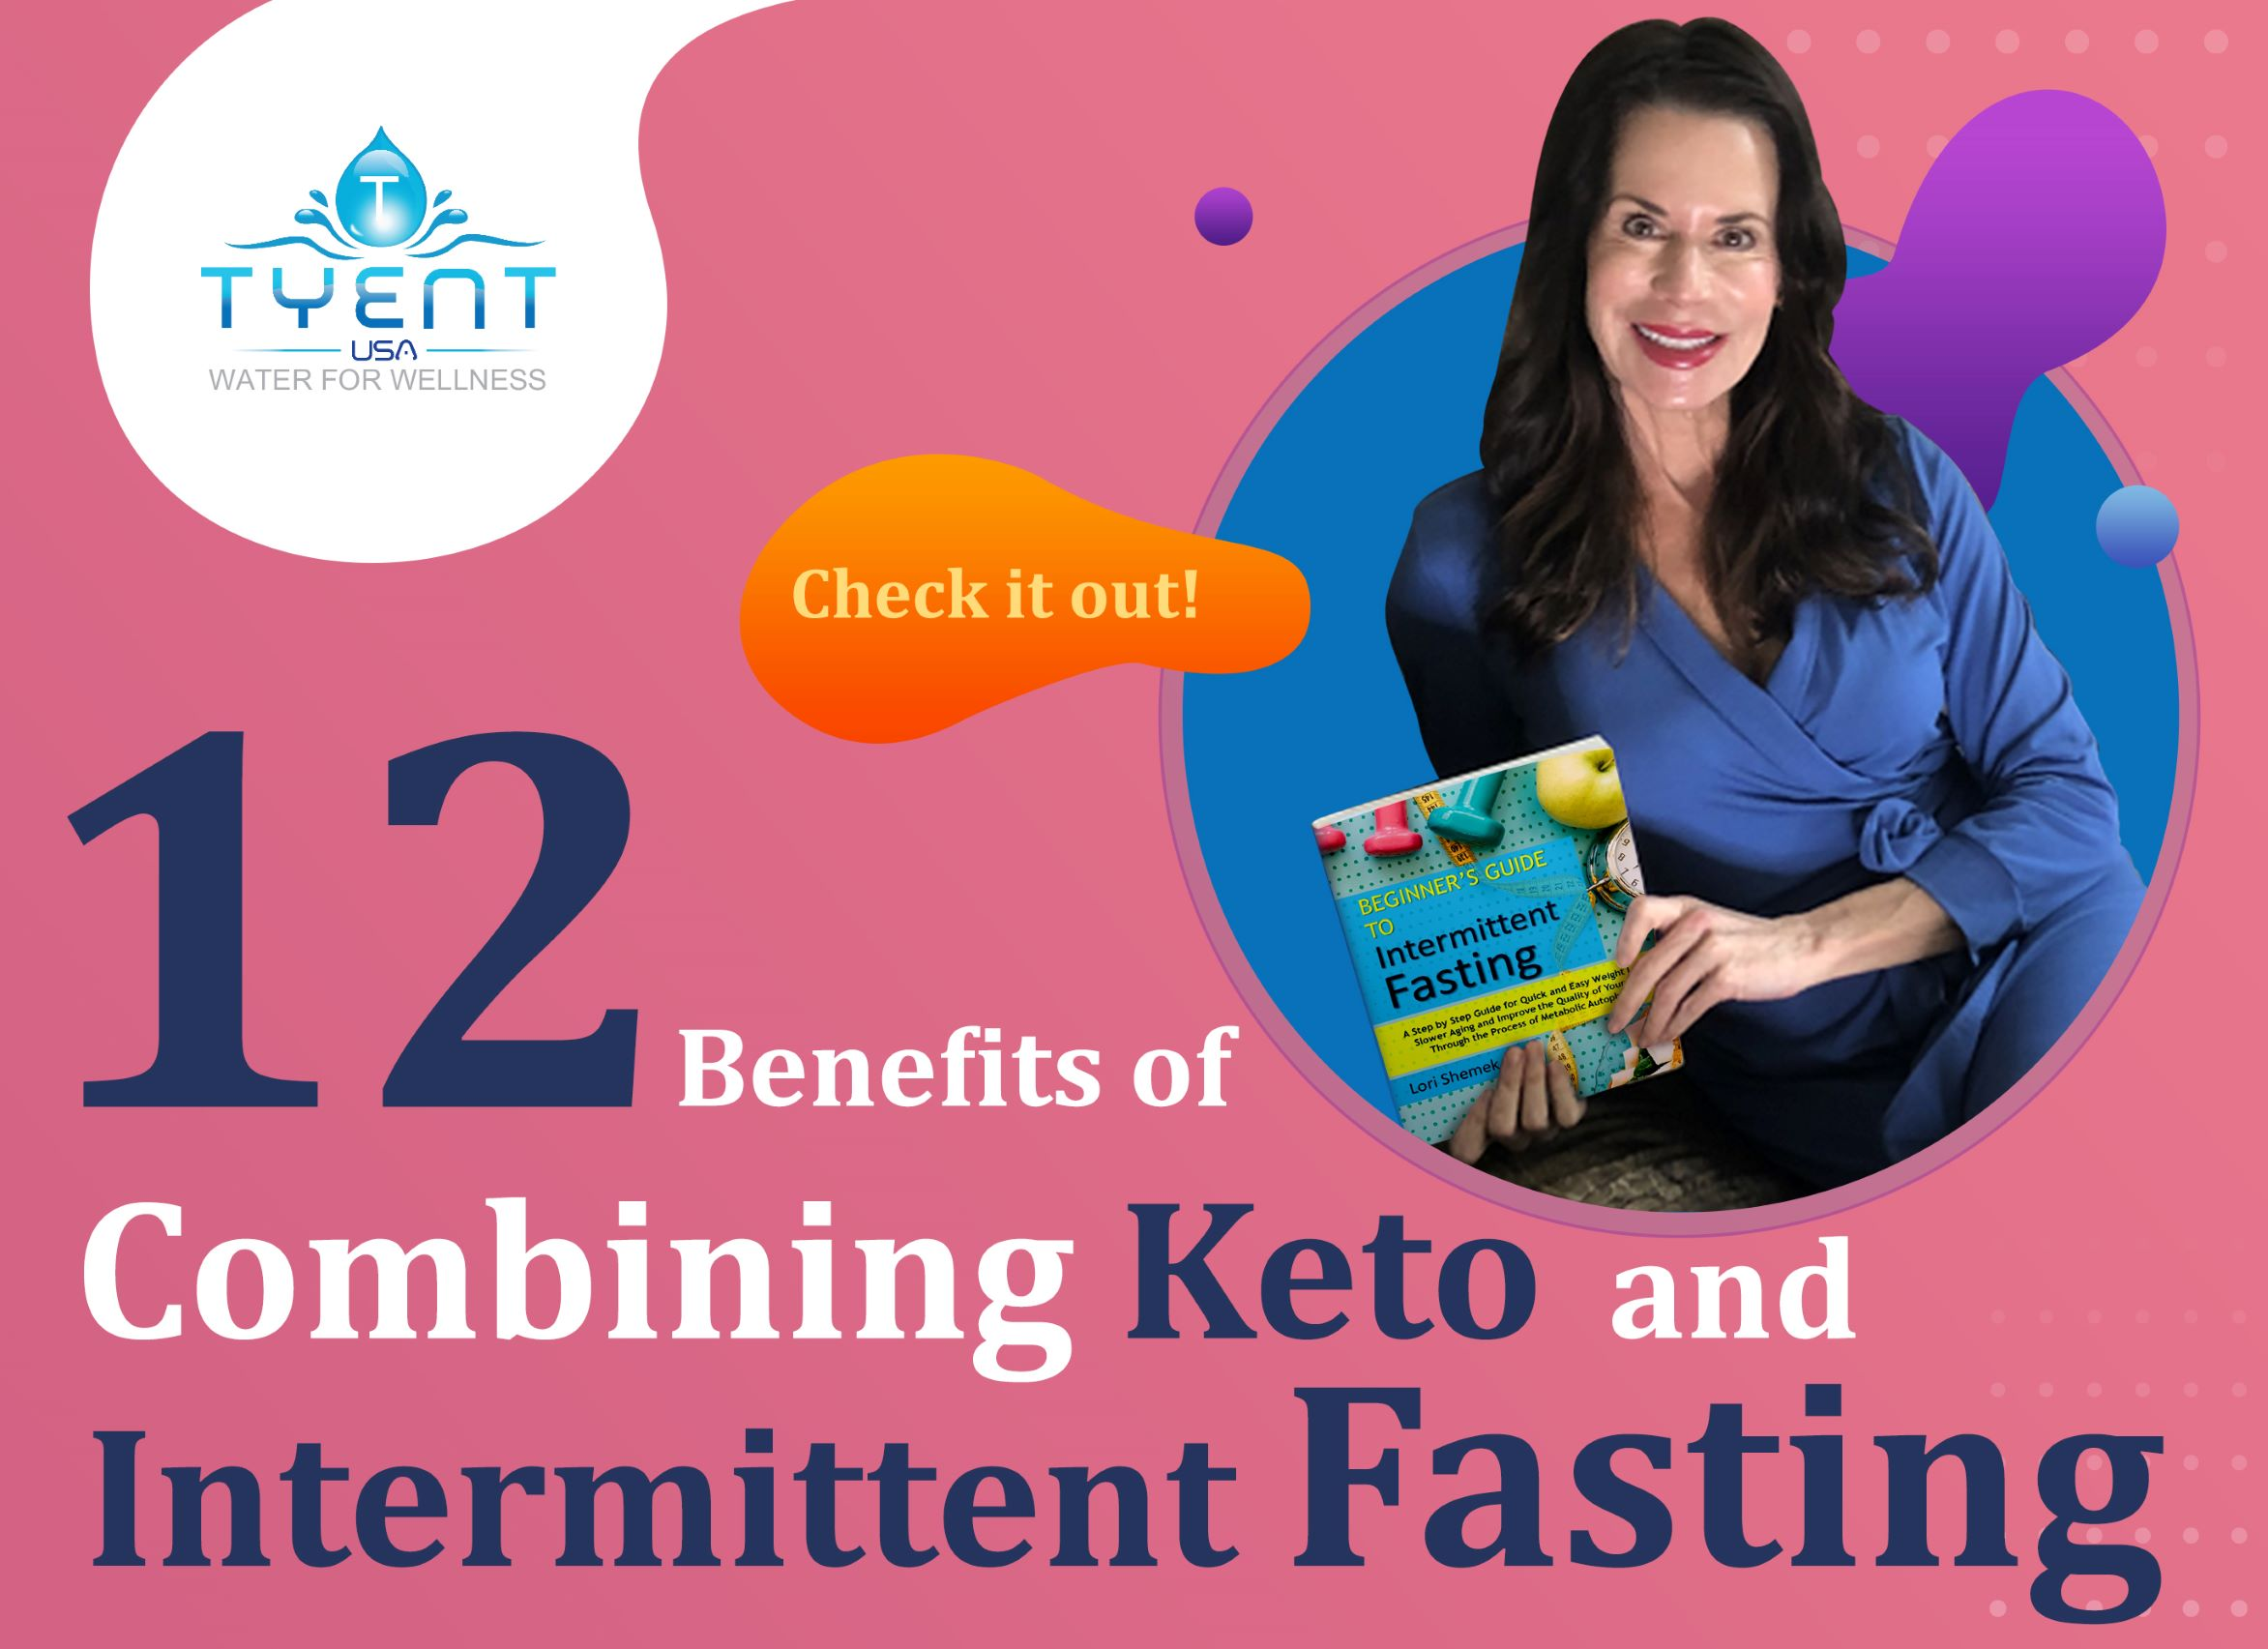 12 Benefits of Combining Keto and Intermittent Fasting